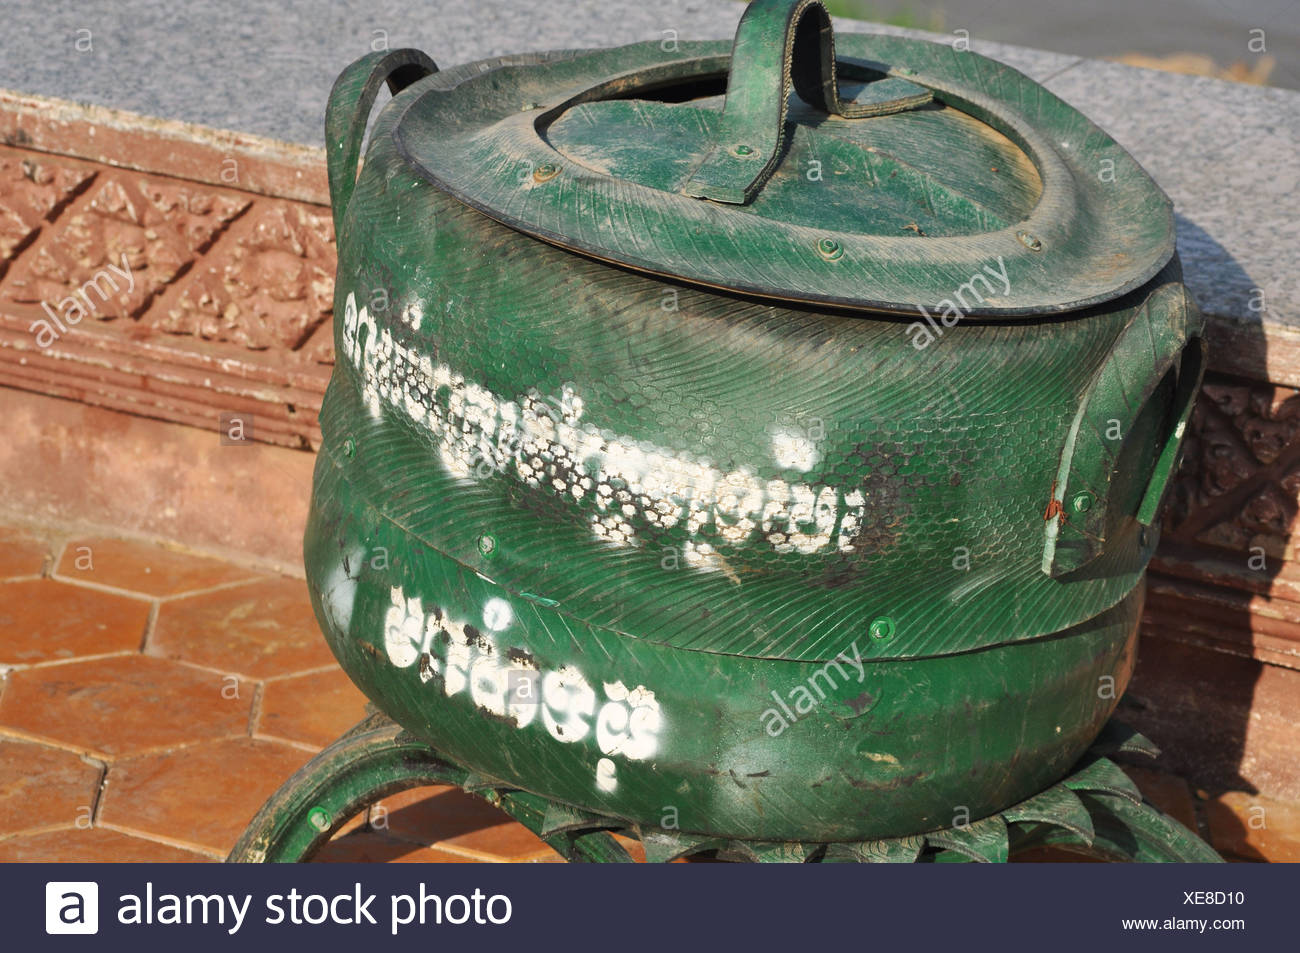 Phnom Penh (Cambodia): garbage bin made with recycled tyres - Stock Image